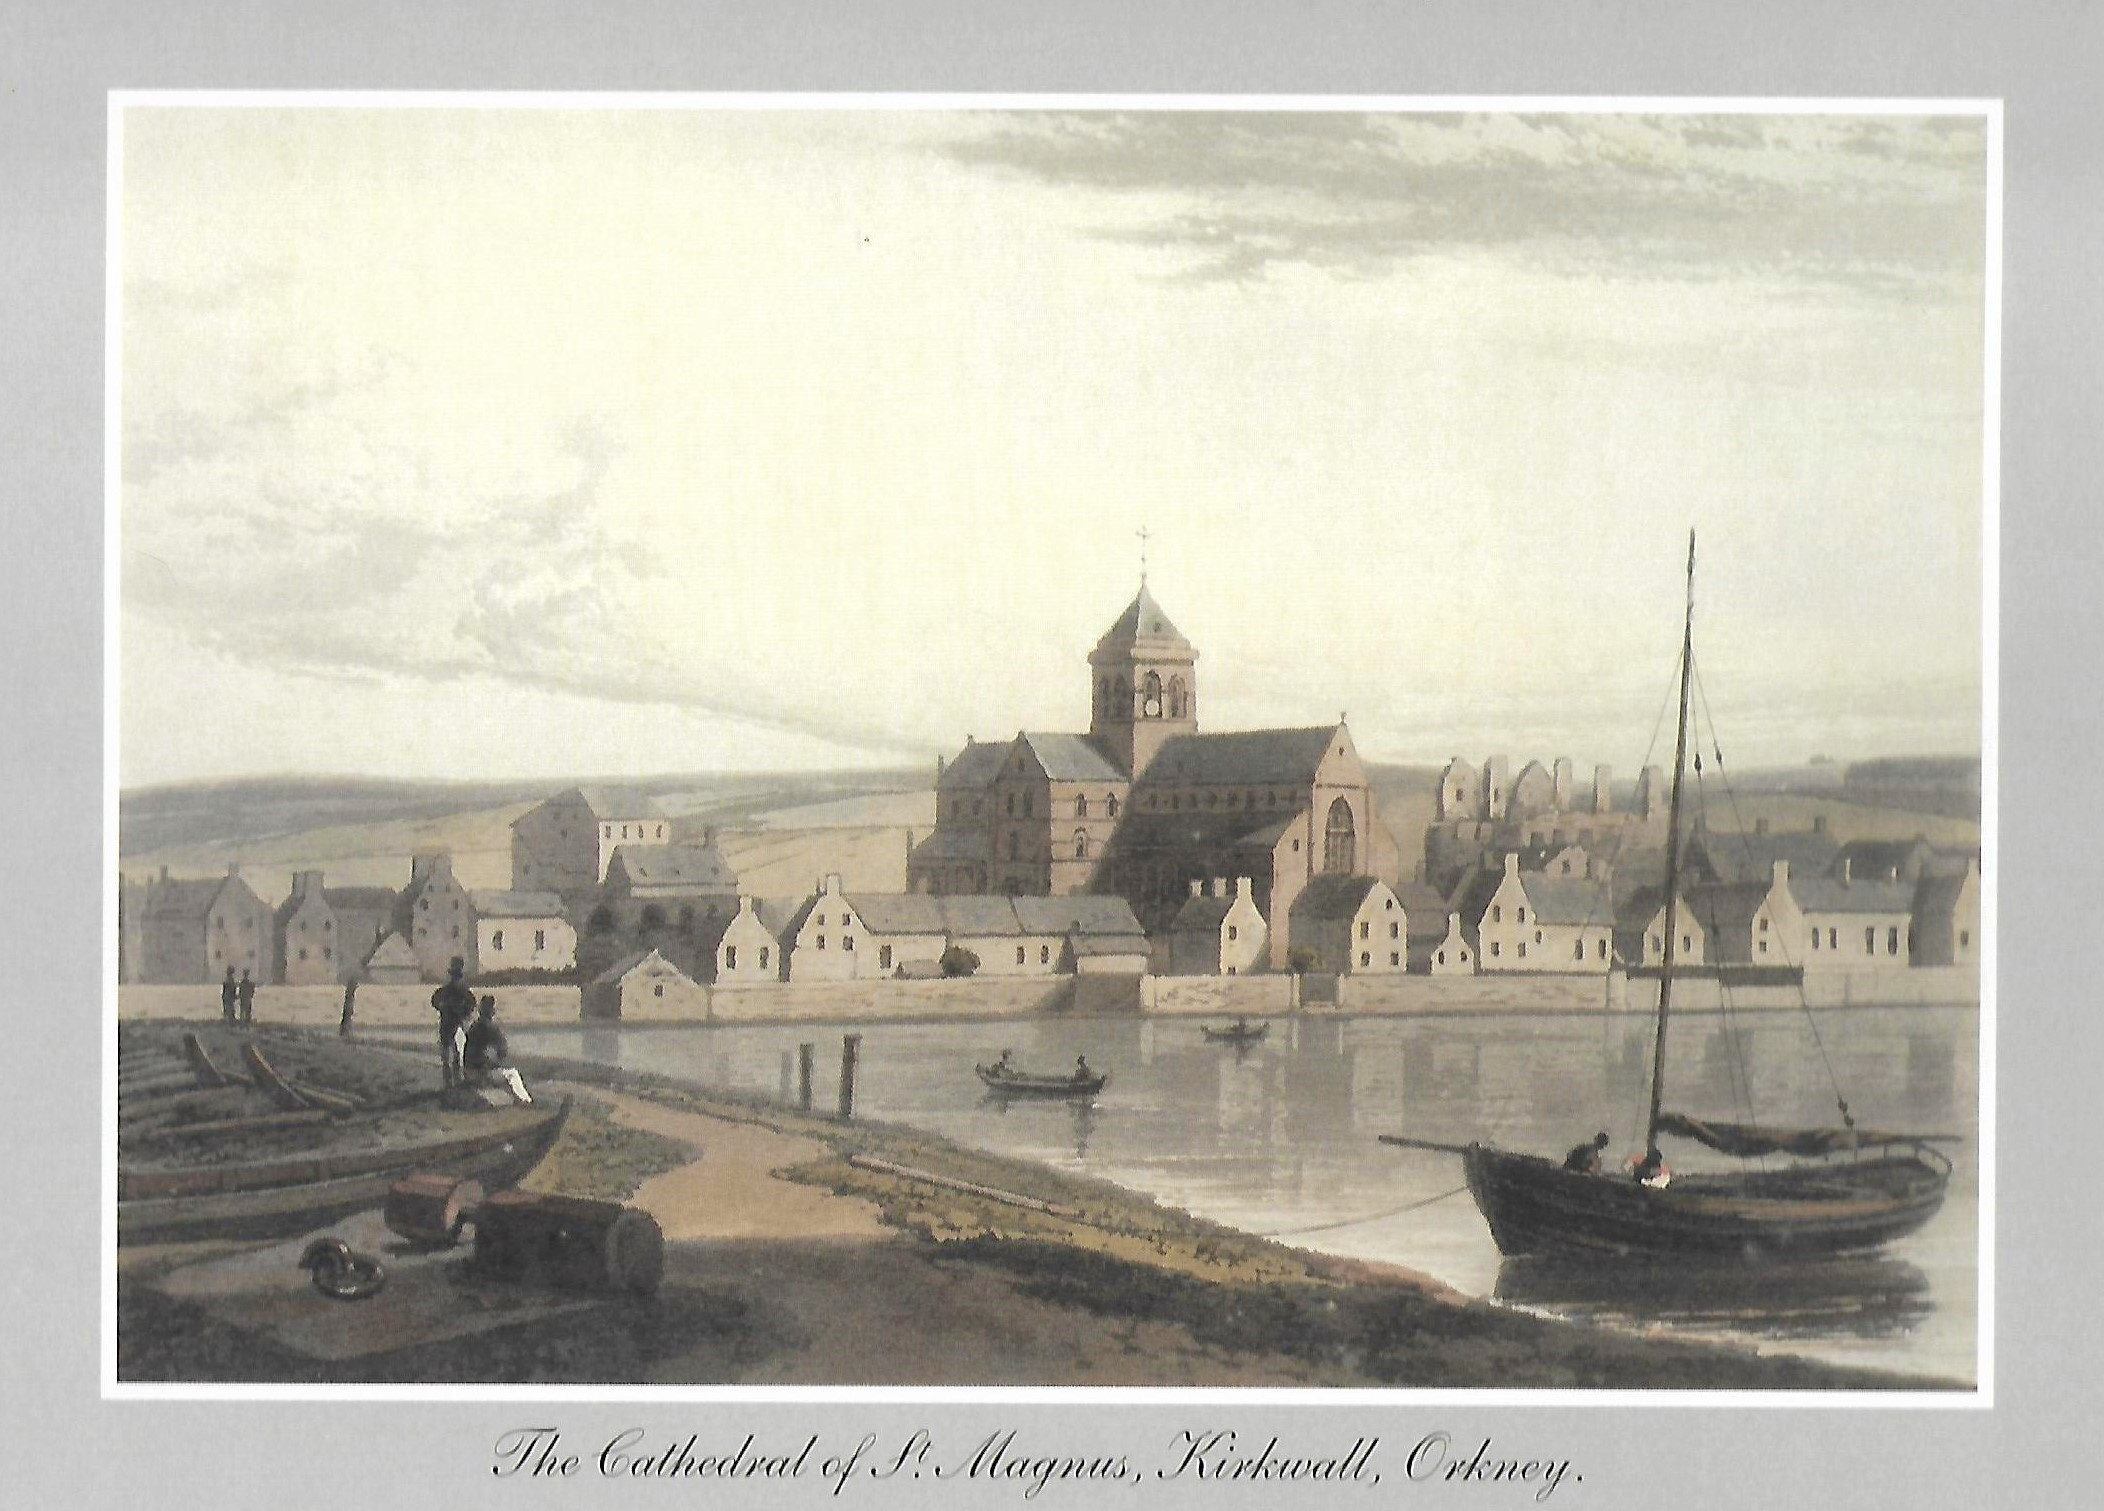 William Danielle painting of St Magnus Cathedral, Orkney Islands, Scotland, UK